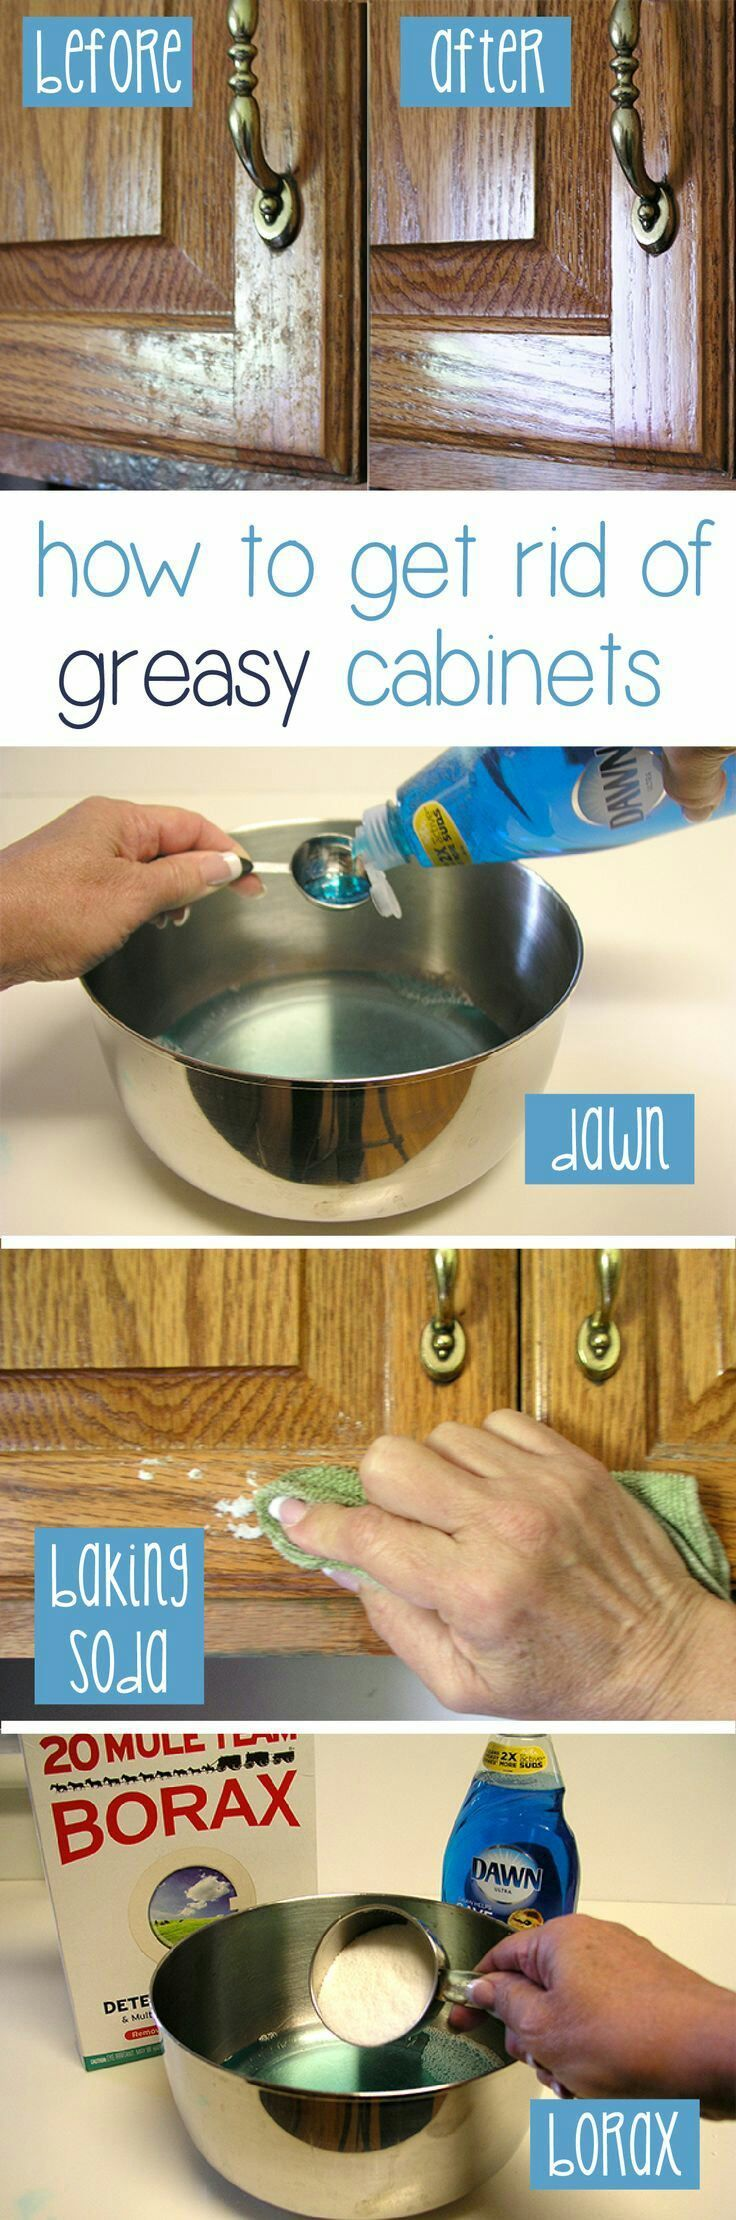 kitchen cabinet cleaning cleaning kitchen cabinets Cleaning kitchen cabinets is important especially grease stains as they usually go unnoticed and grow